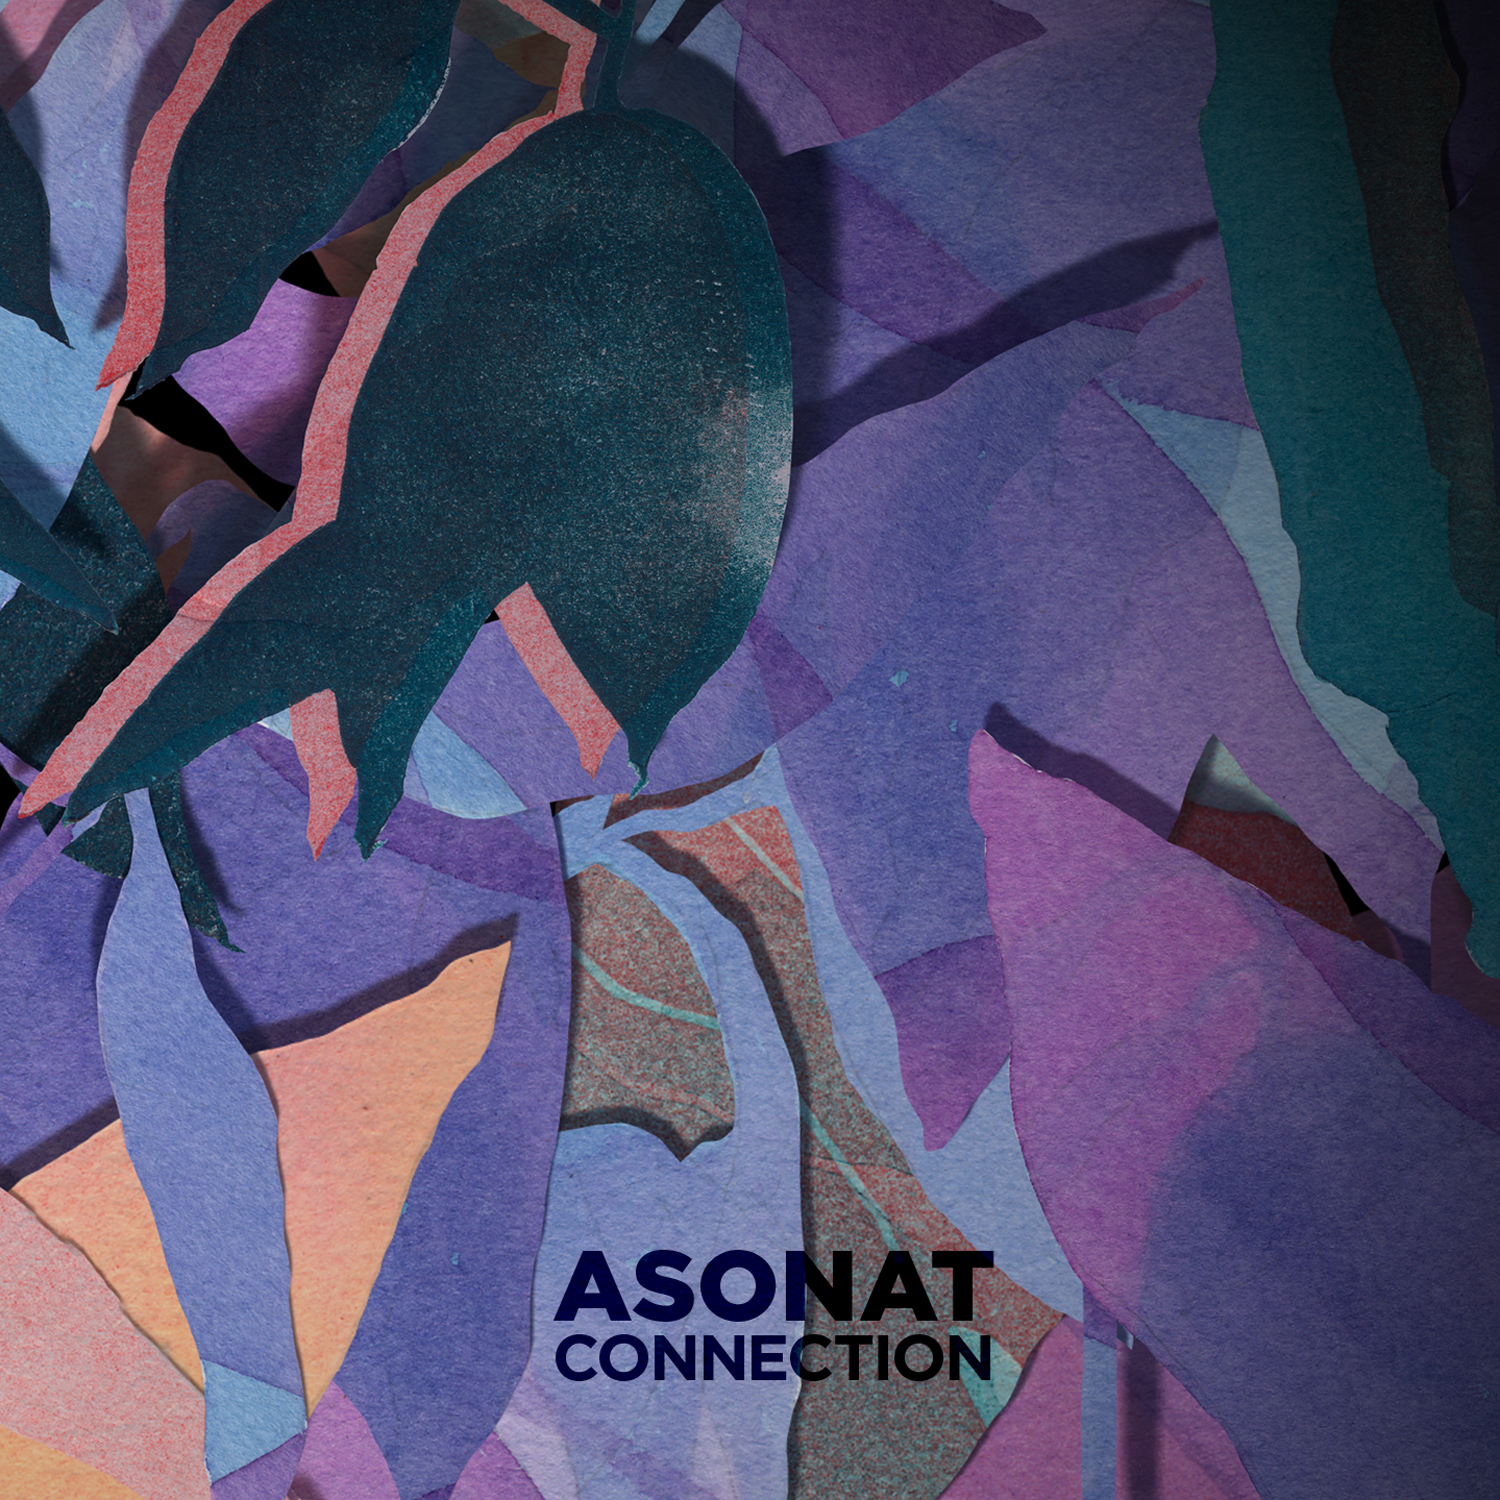 ASONAT - CONNECTION (2014) - ICELAND